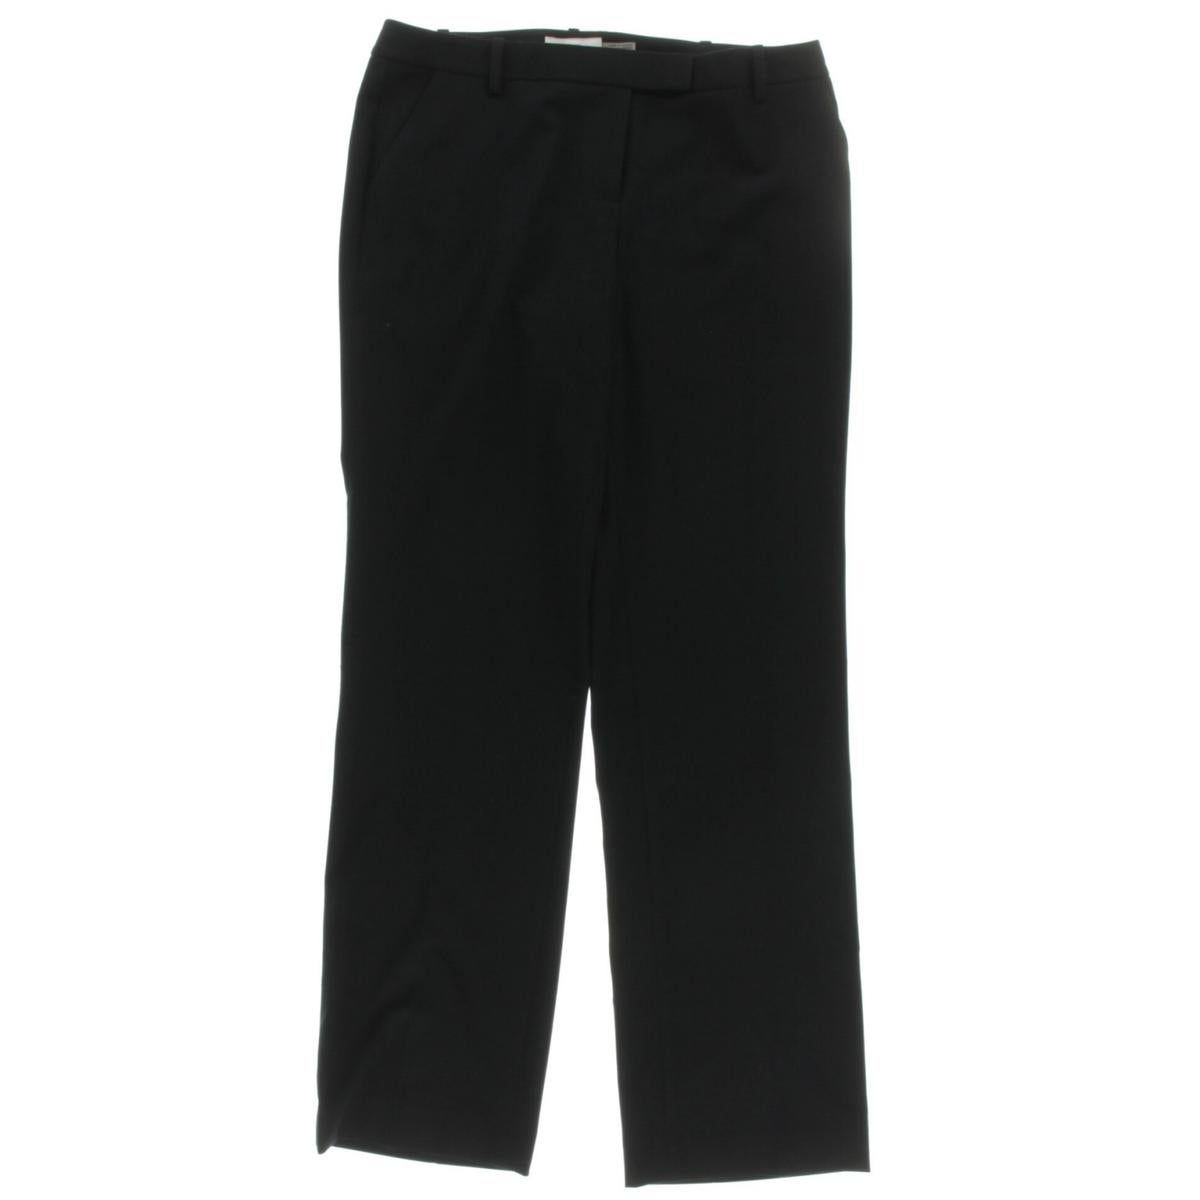 a58014f9 Shop Calvin Klein Womens The Madison Dress Pants Straight Leg Relaxed -  Free Shipping On Orders Over $45 - Overstock - 15813280